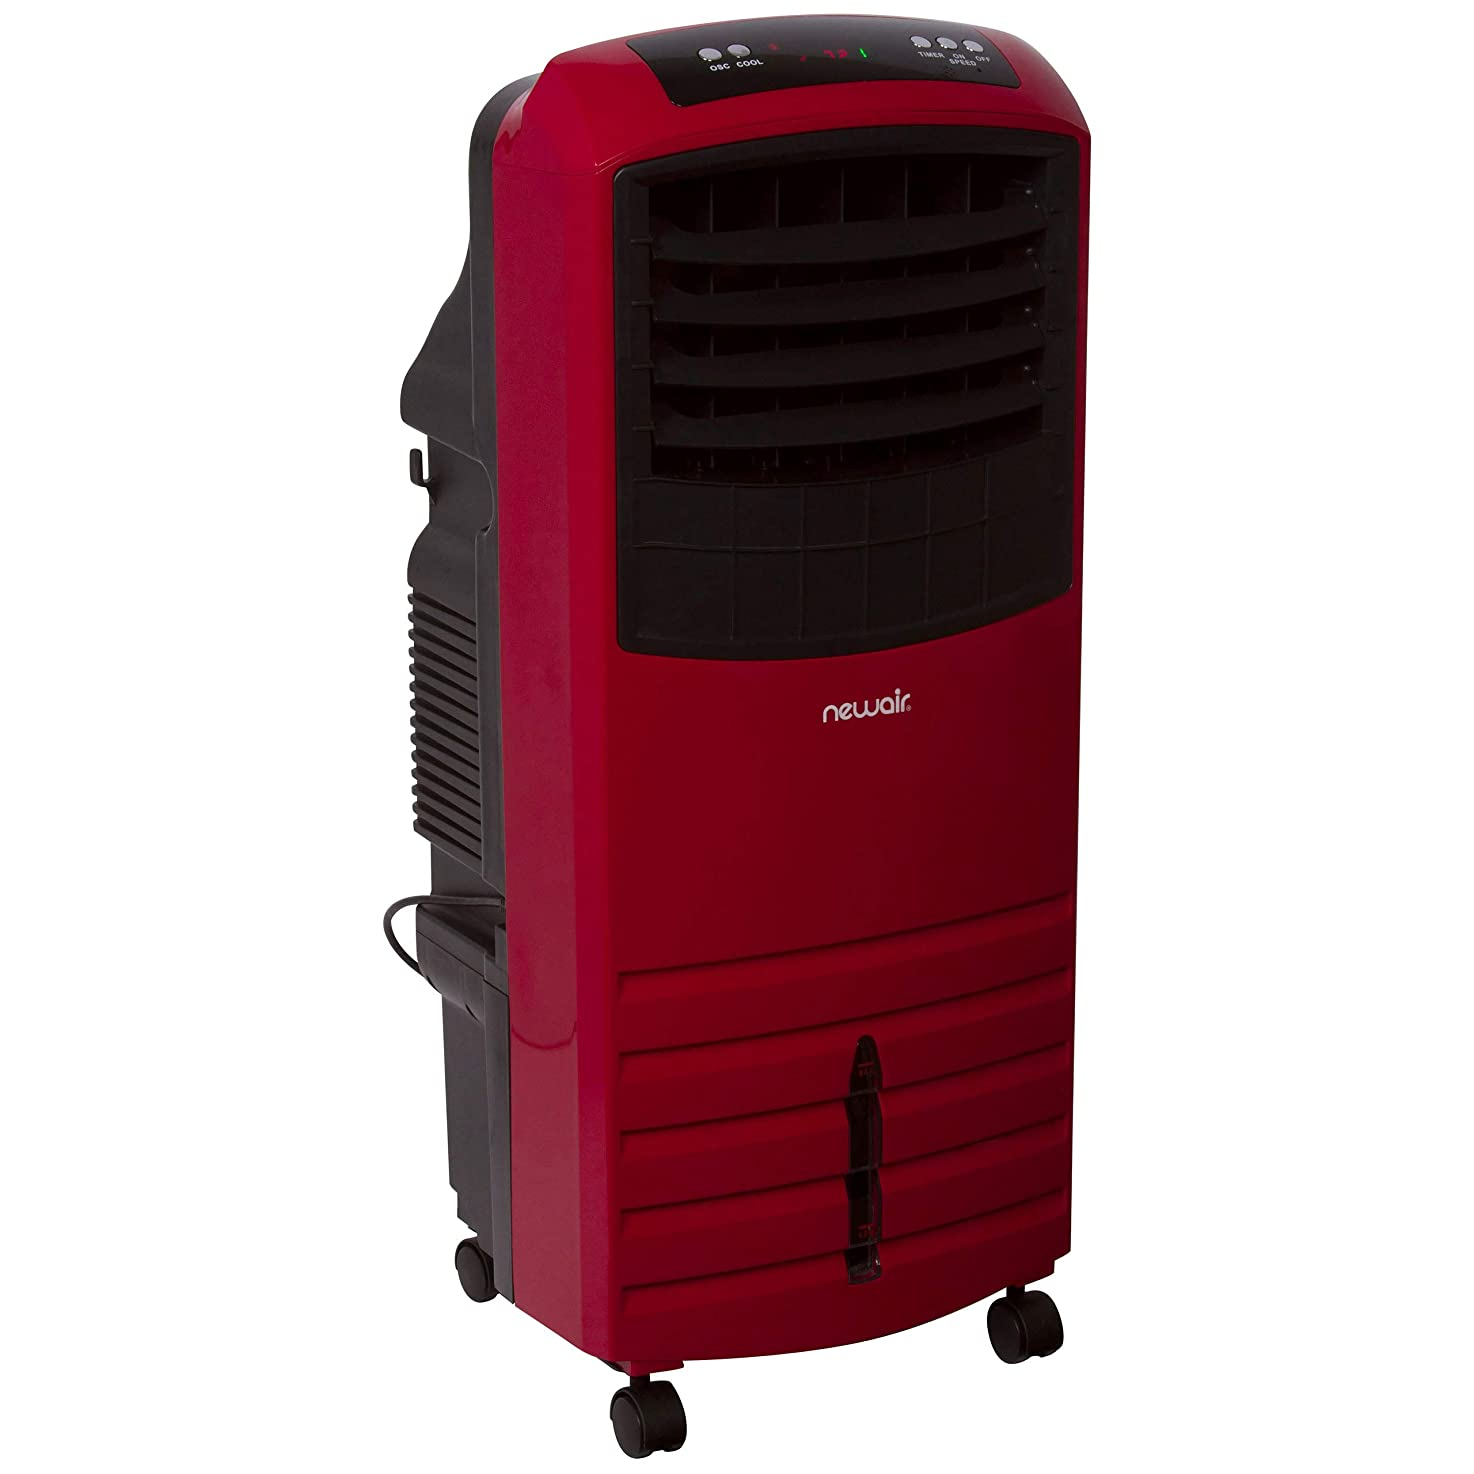 NewAir Portable Evaporative Air Cooler with Fan & Humidifier, Indoor Tower Fan in Red, AF-1000R btqccixiamorh8